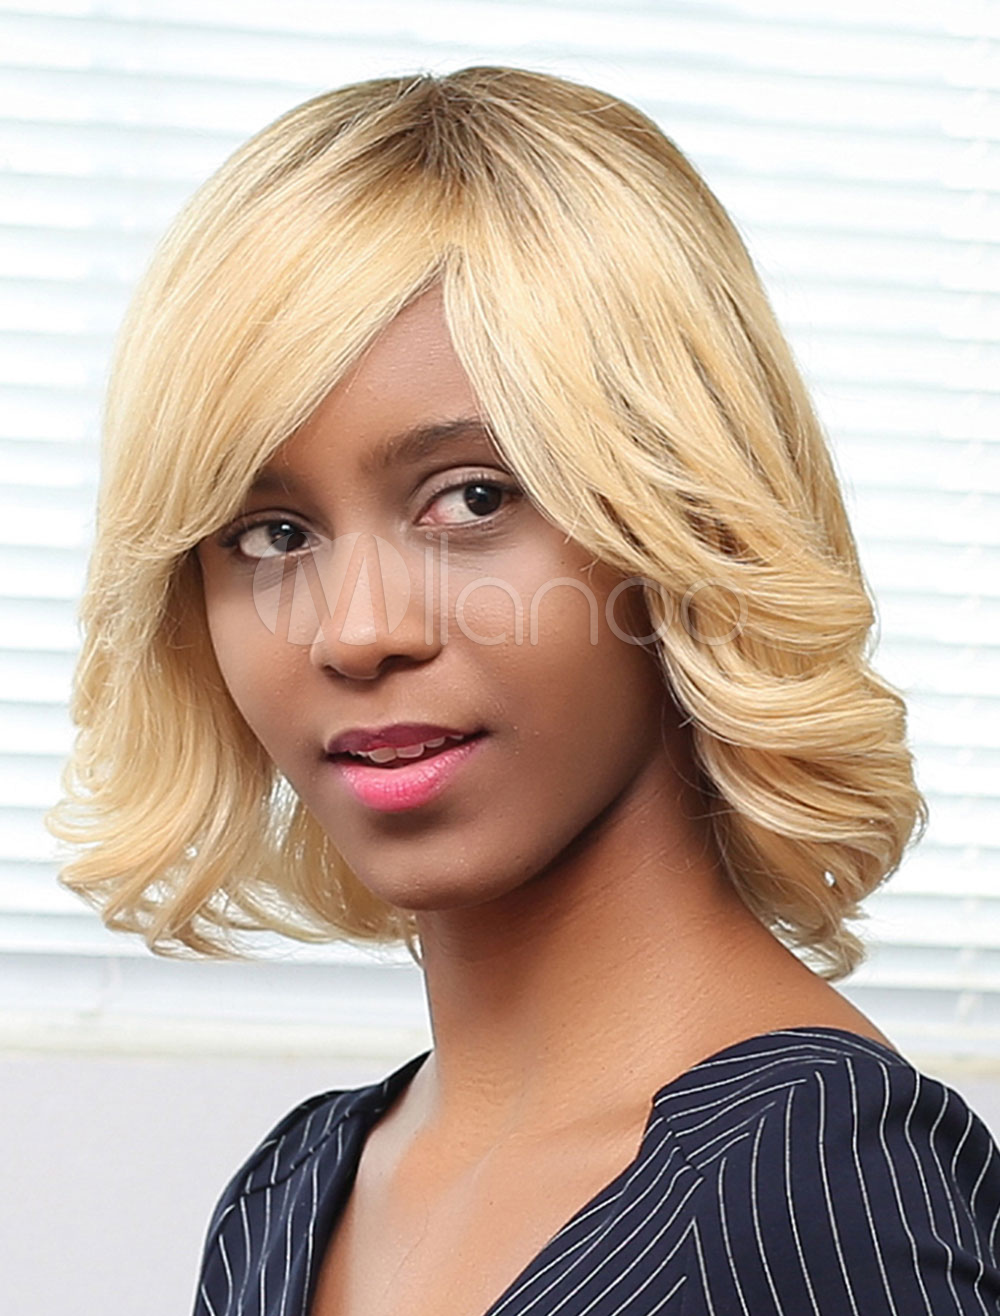 Buy Blonde Human Hair Wigs African American Curly Short Hair Wigs With Side Bangs for $84.99 in Milanoo store